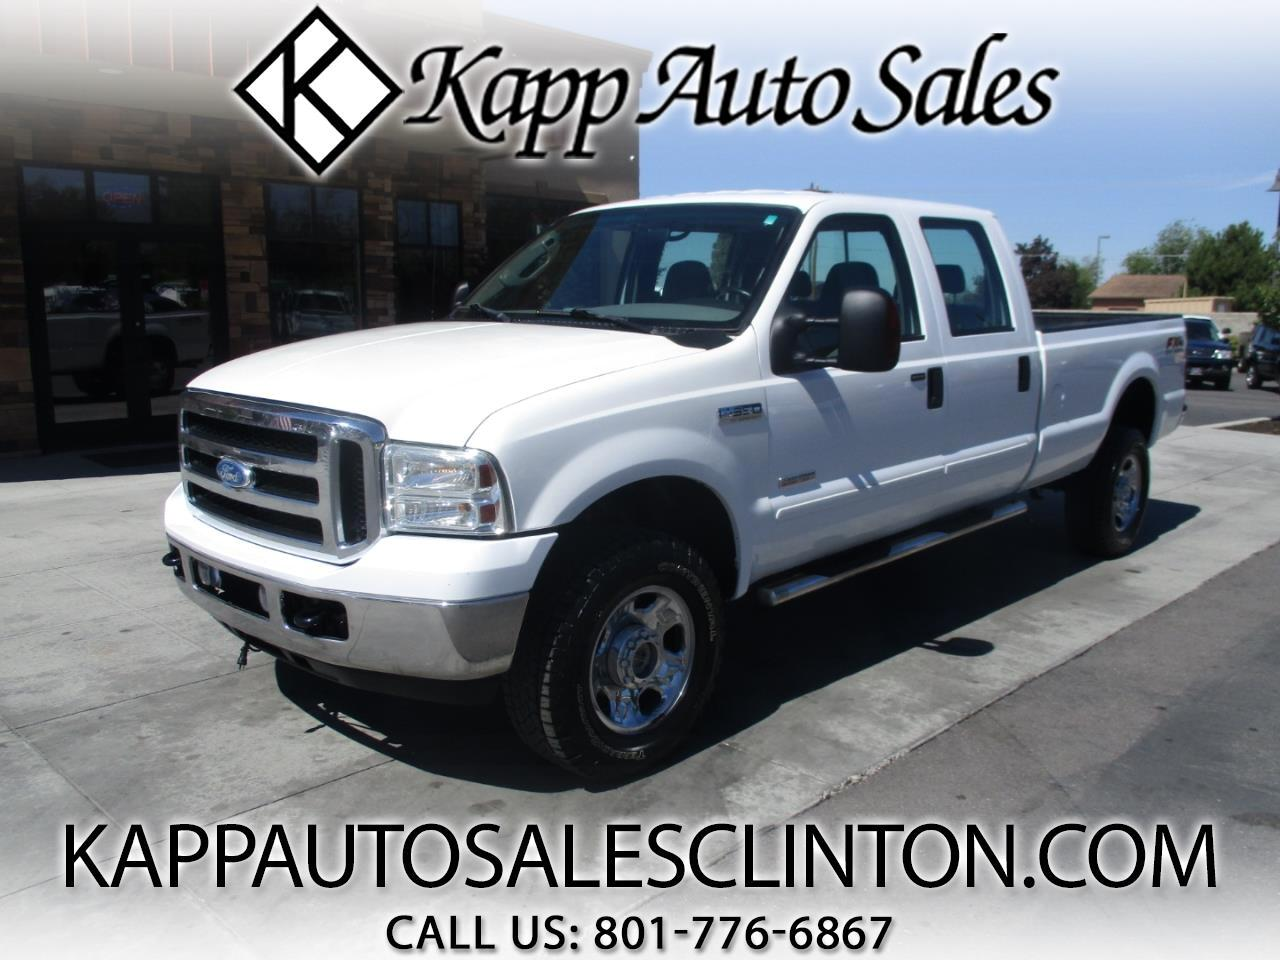 2006 Ford Super Duty F-350 SRW Crew Cab 172